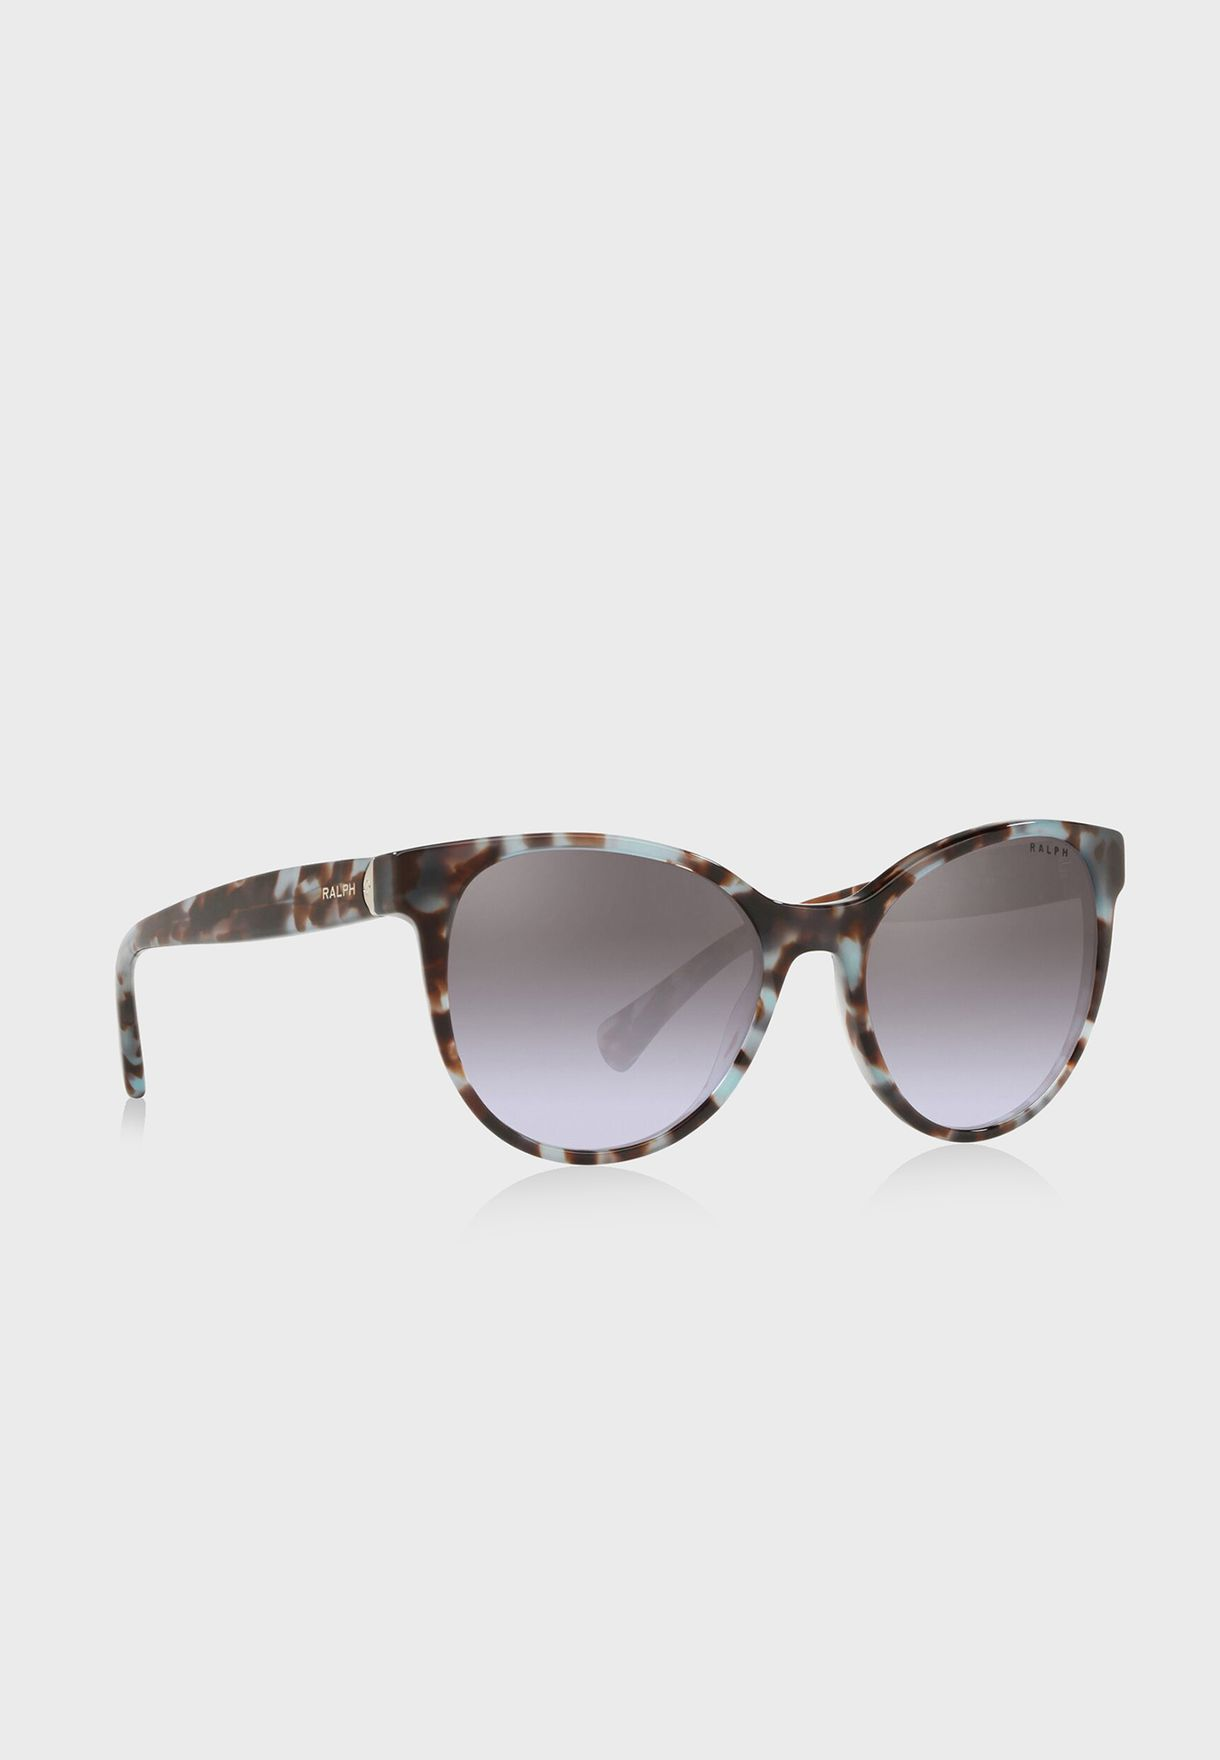 0RA5250 Butterfly Sunglasses